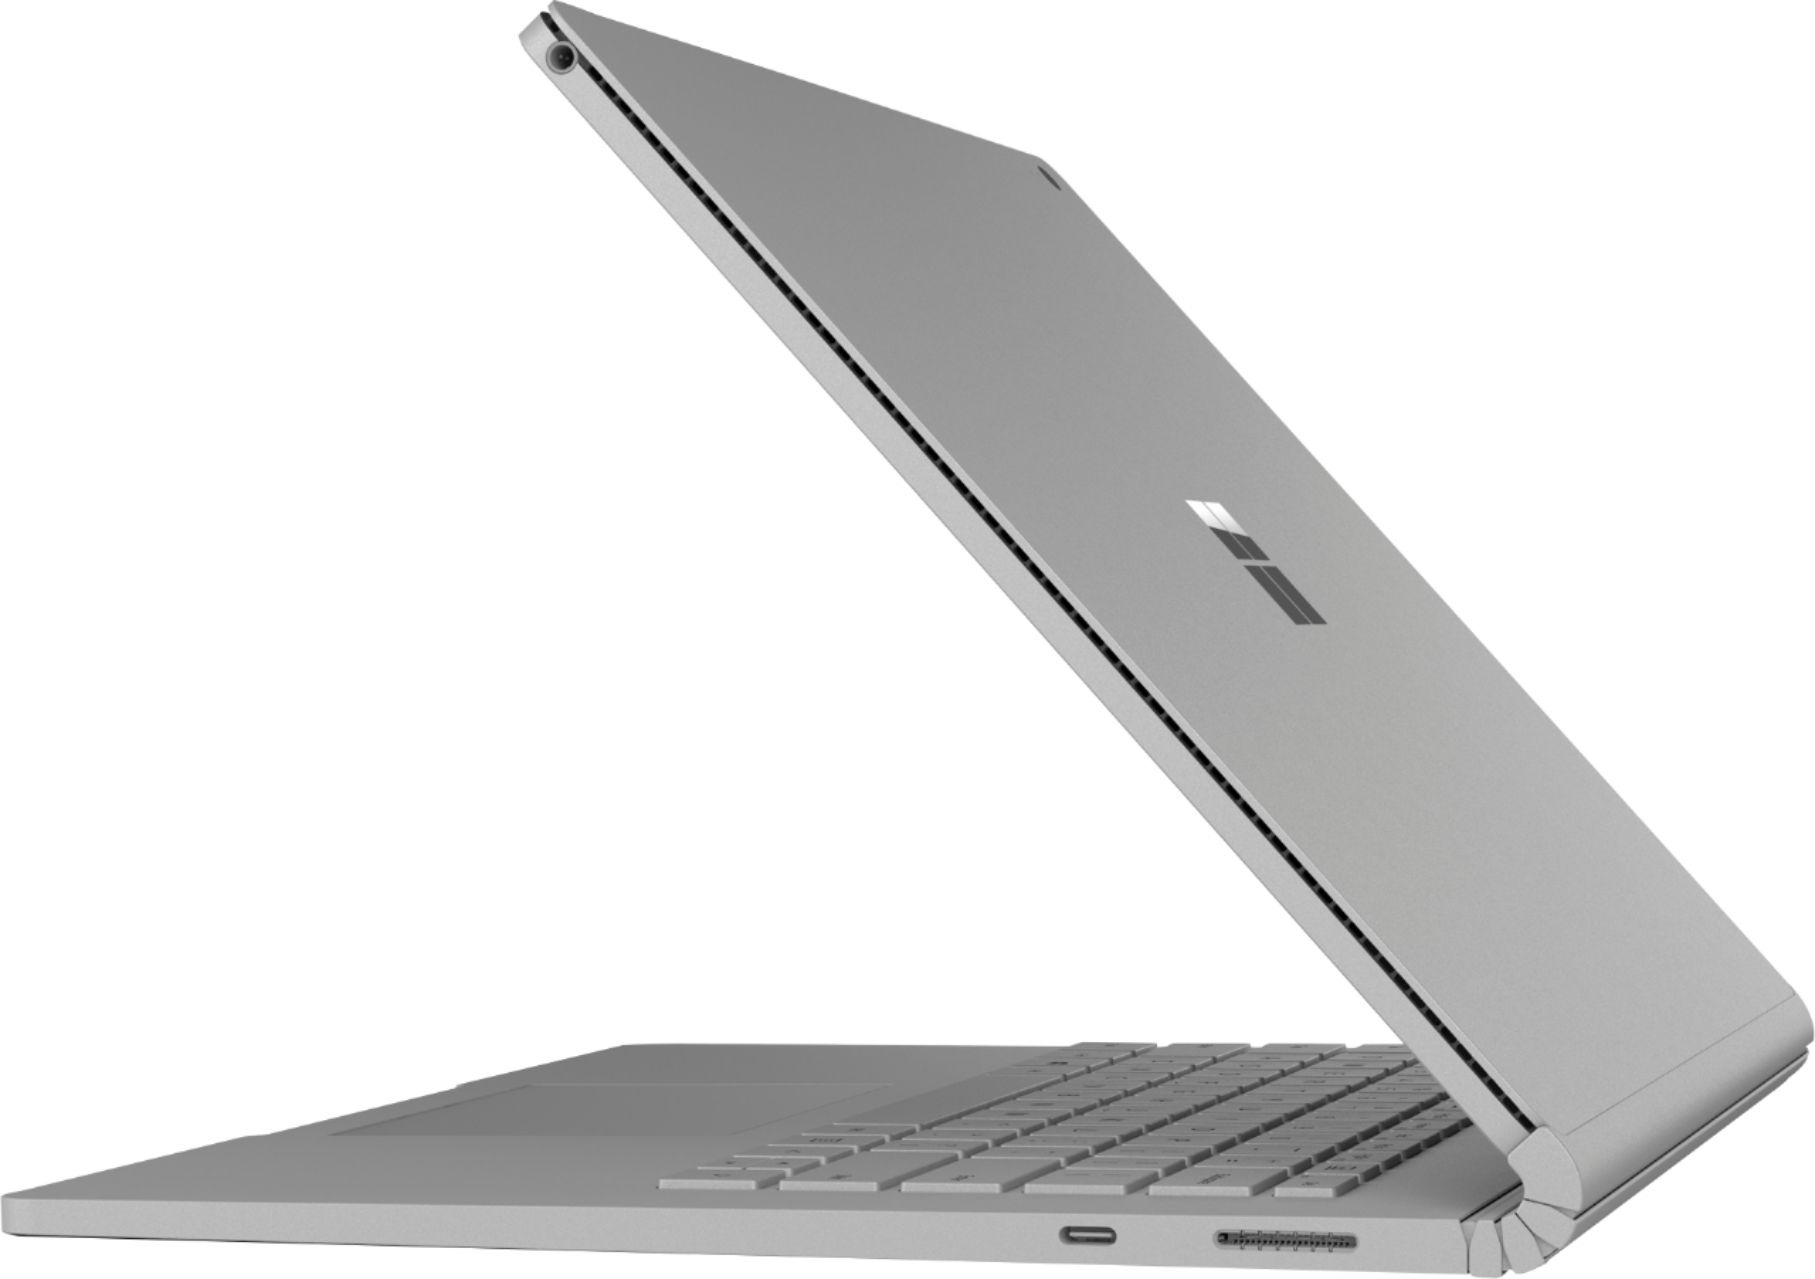 """Left Zoom. Microsoft - Geek Squad Certified Refurbished Surface Book 2 - 13.5"""" Touch-Screen Laptop - Intel Core i5 - 8GB Memory - 128GB SSD - Platinum."""